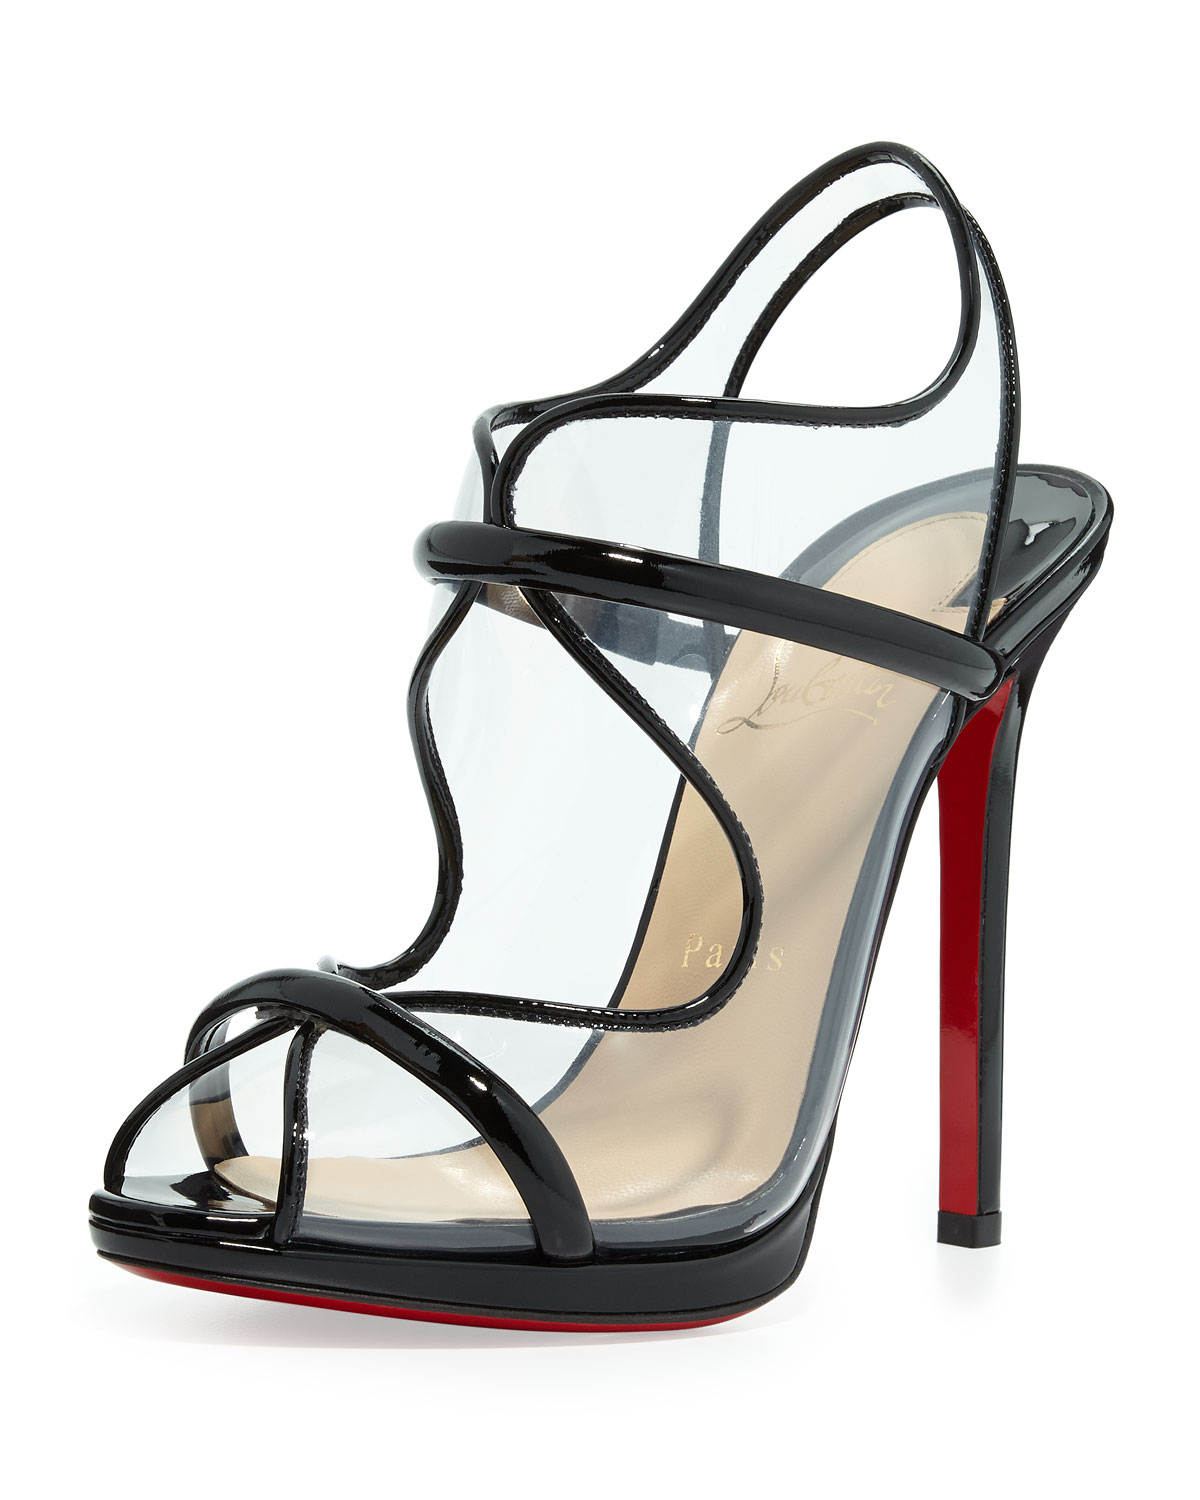 Artesur ? christian louboutin sandals Transparent PVC black patent ...